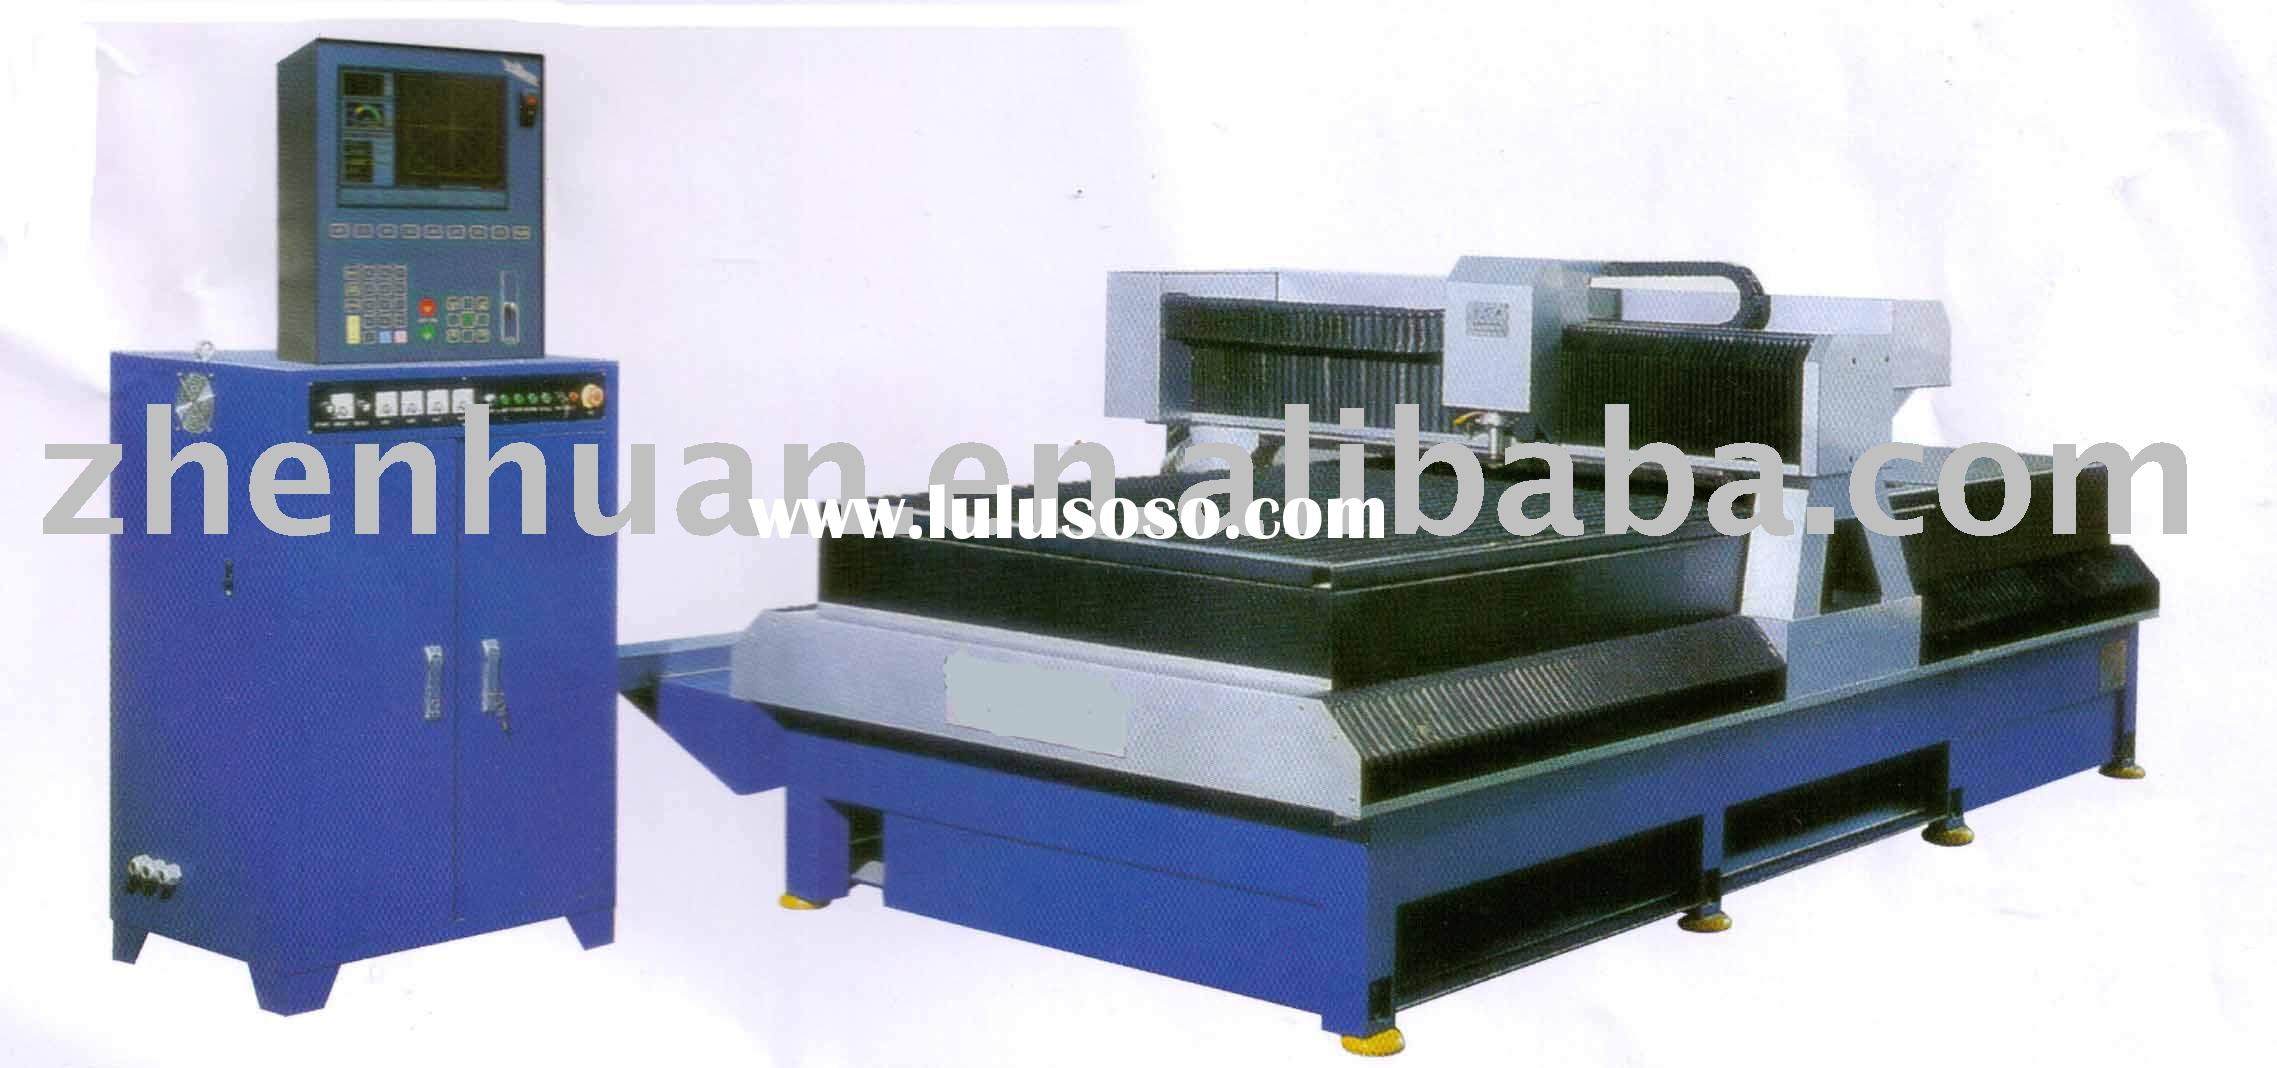 Plasma Cutting Machine,plasma cutter,profile cutting machine